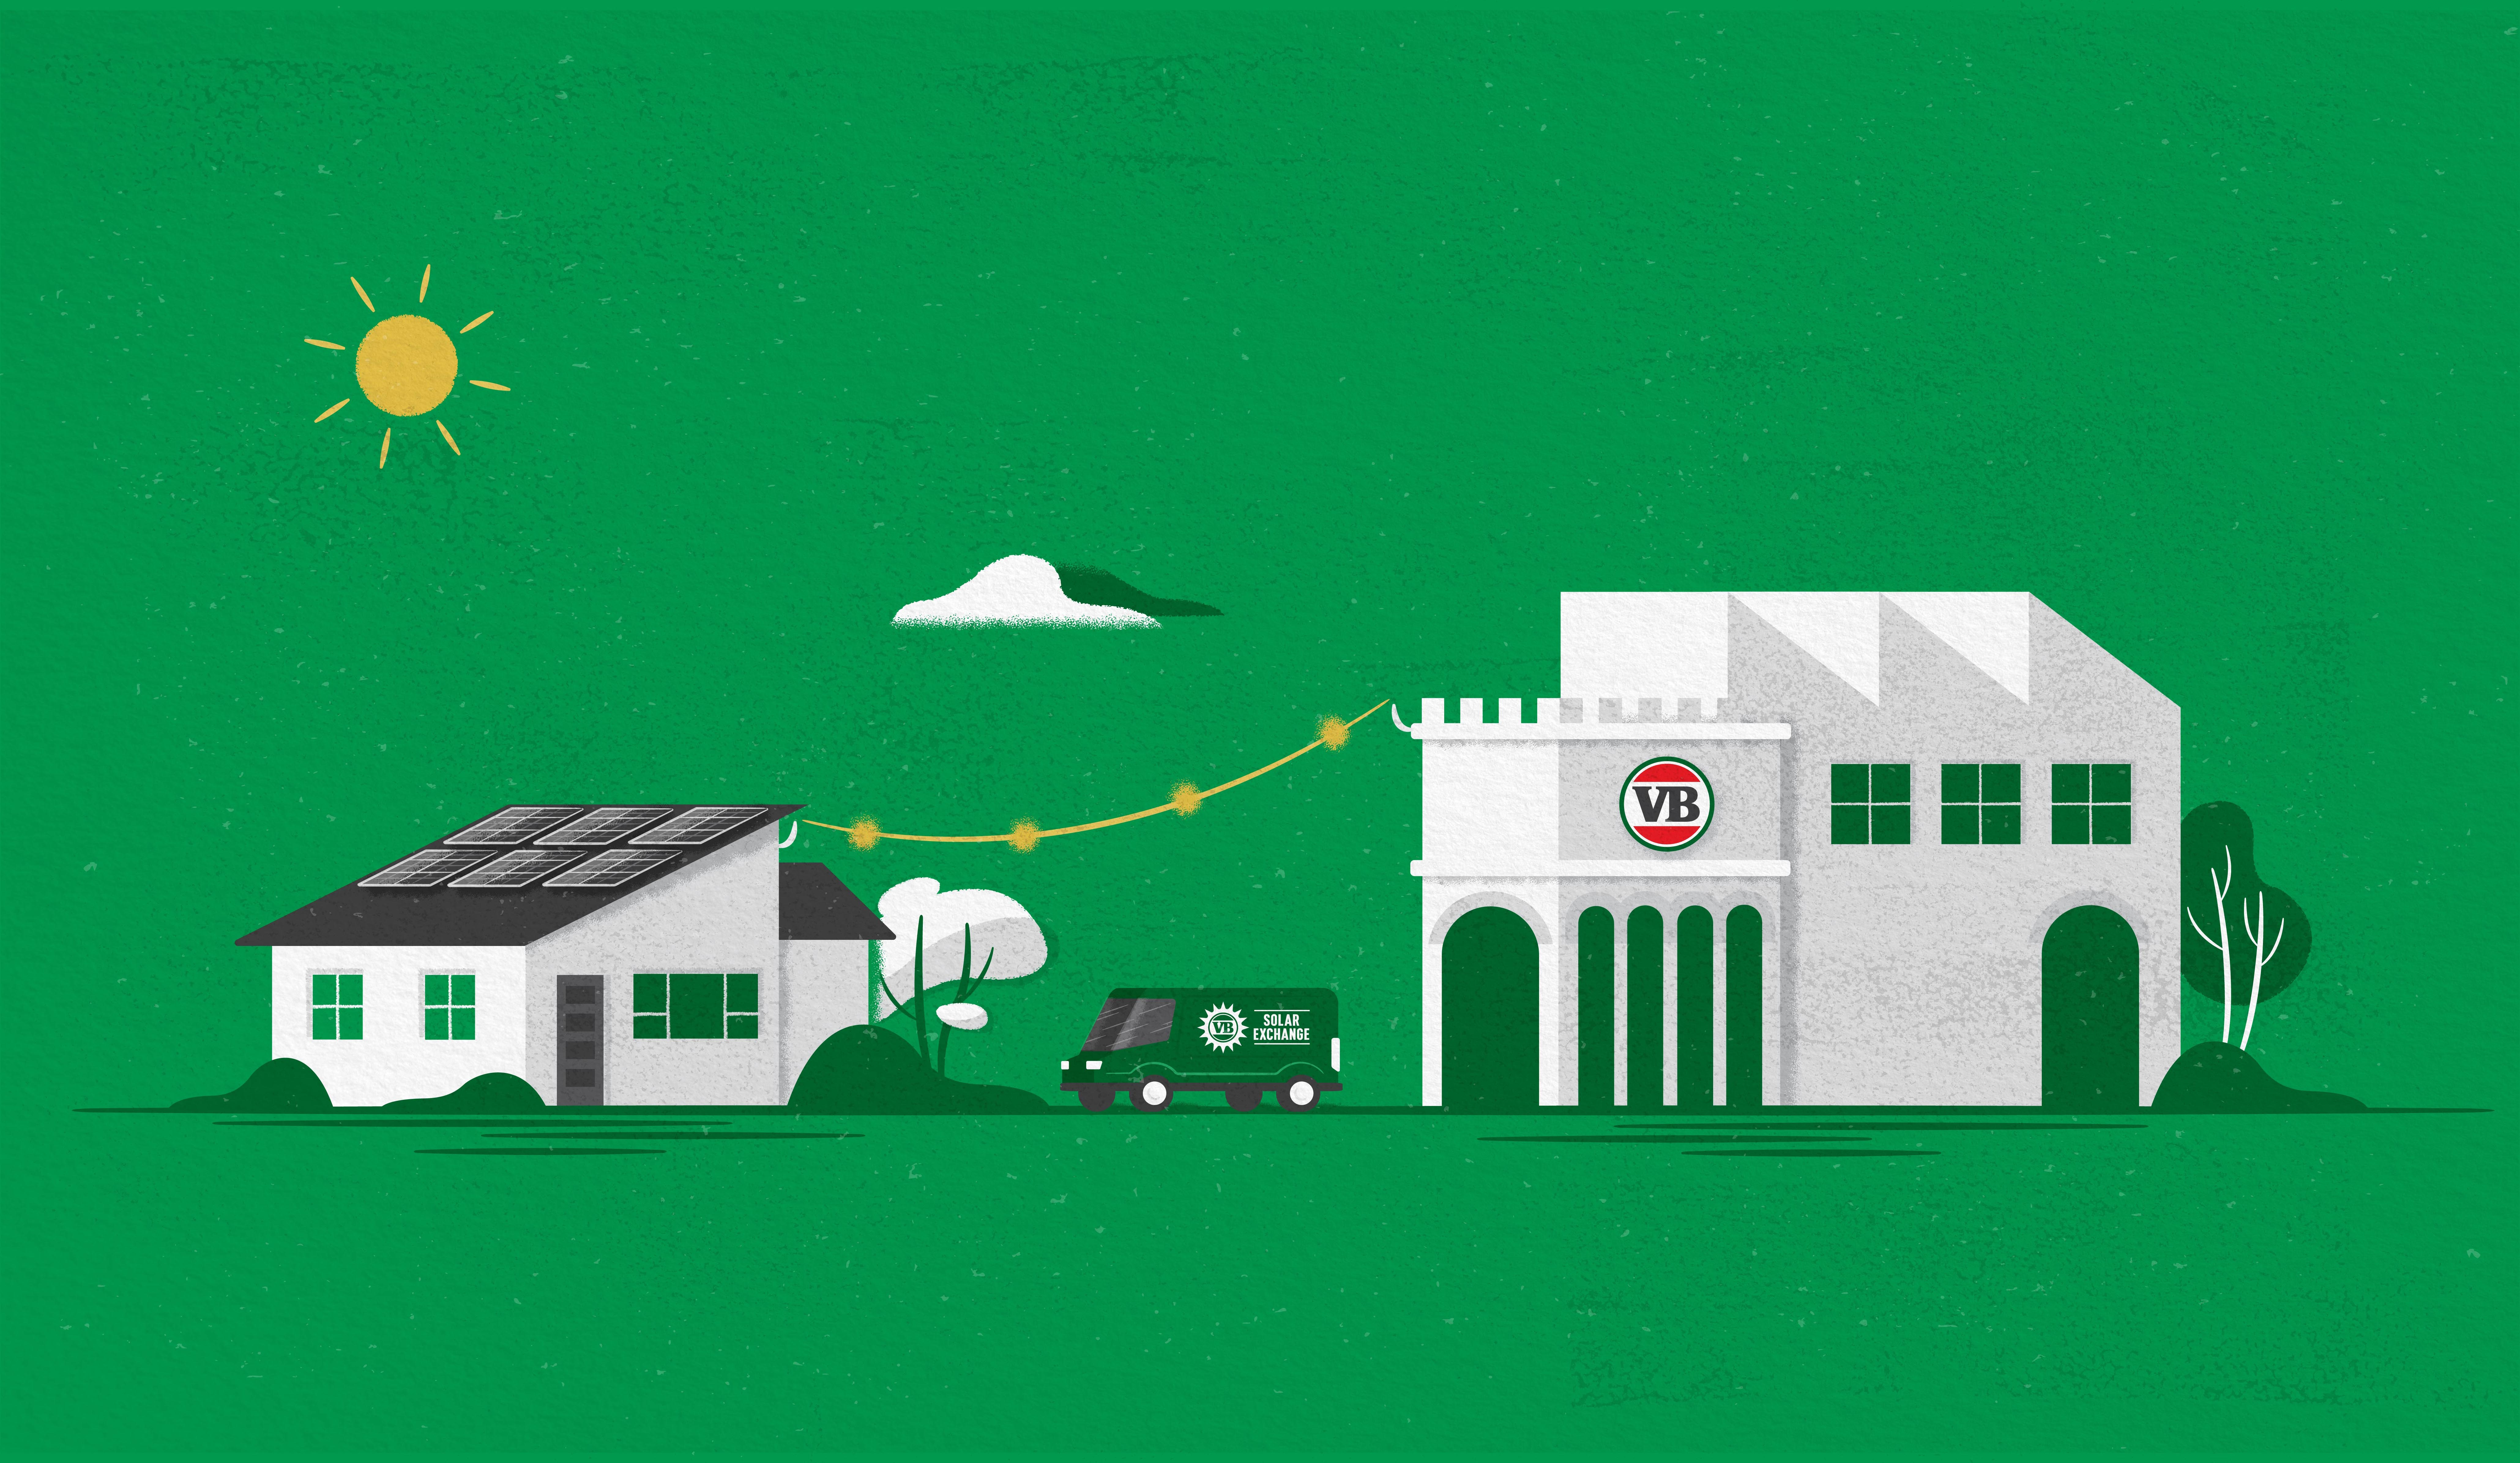 illustration of a house next to a building where a car is driving between the two